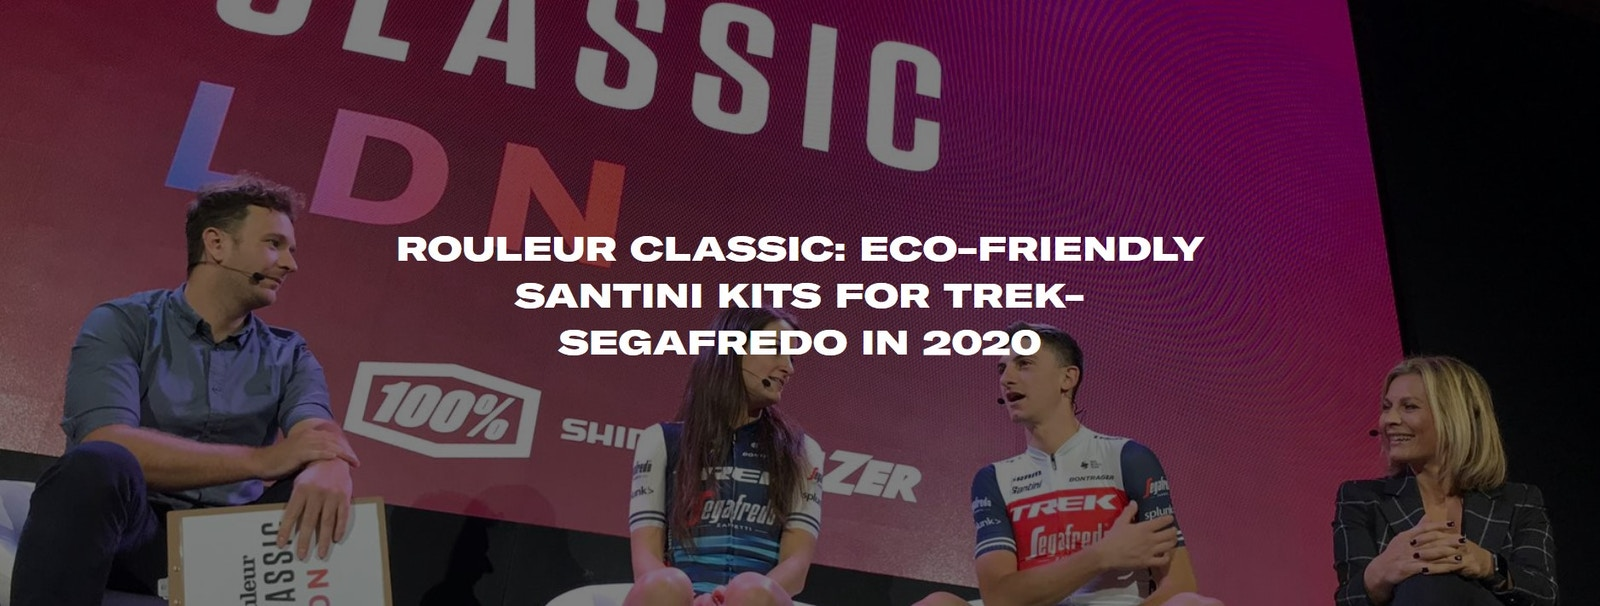 ROULEUR CLASSIC: ECO-FRIENDLY SANTINI KITS FOR TREK-SEGAFREDO IN 2020